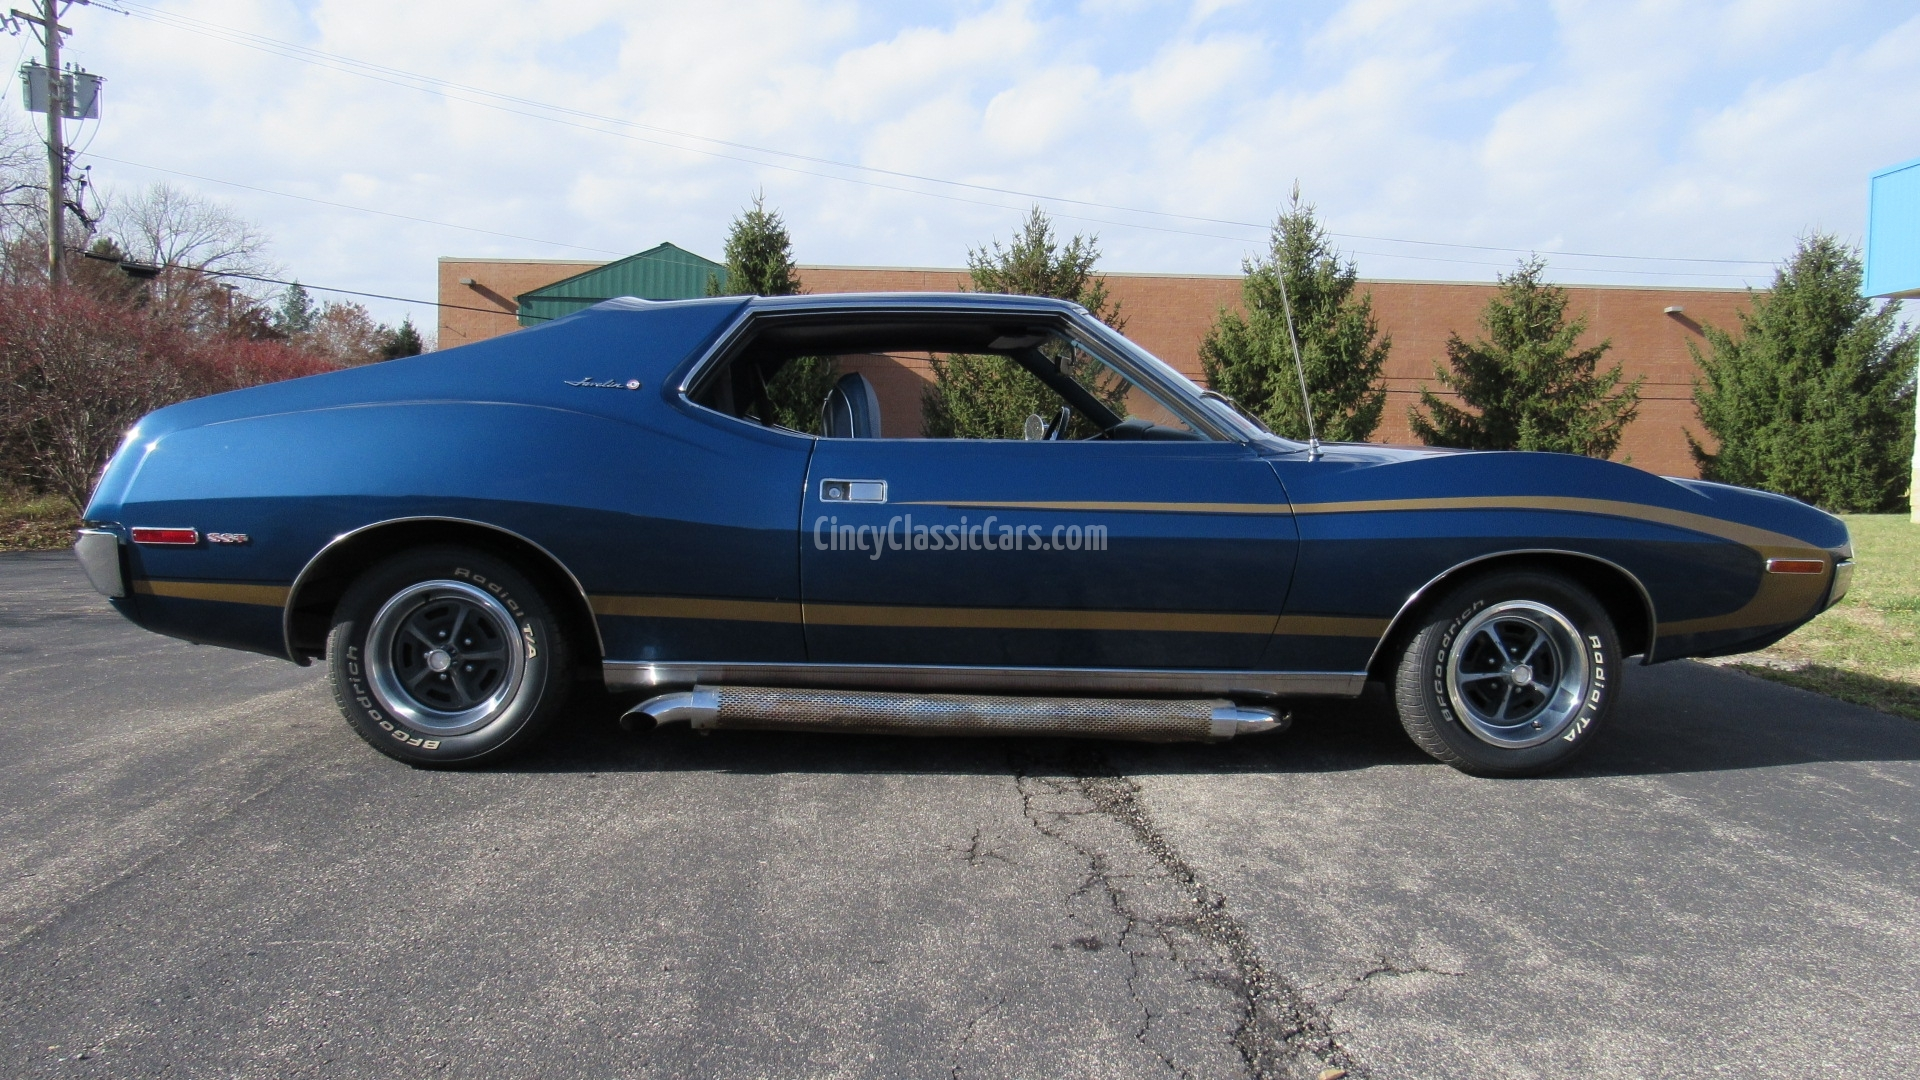 1972 AMC Javelin, 3 Speed, 304, SOLD! | Cincy Classic Cars